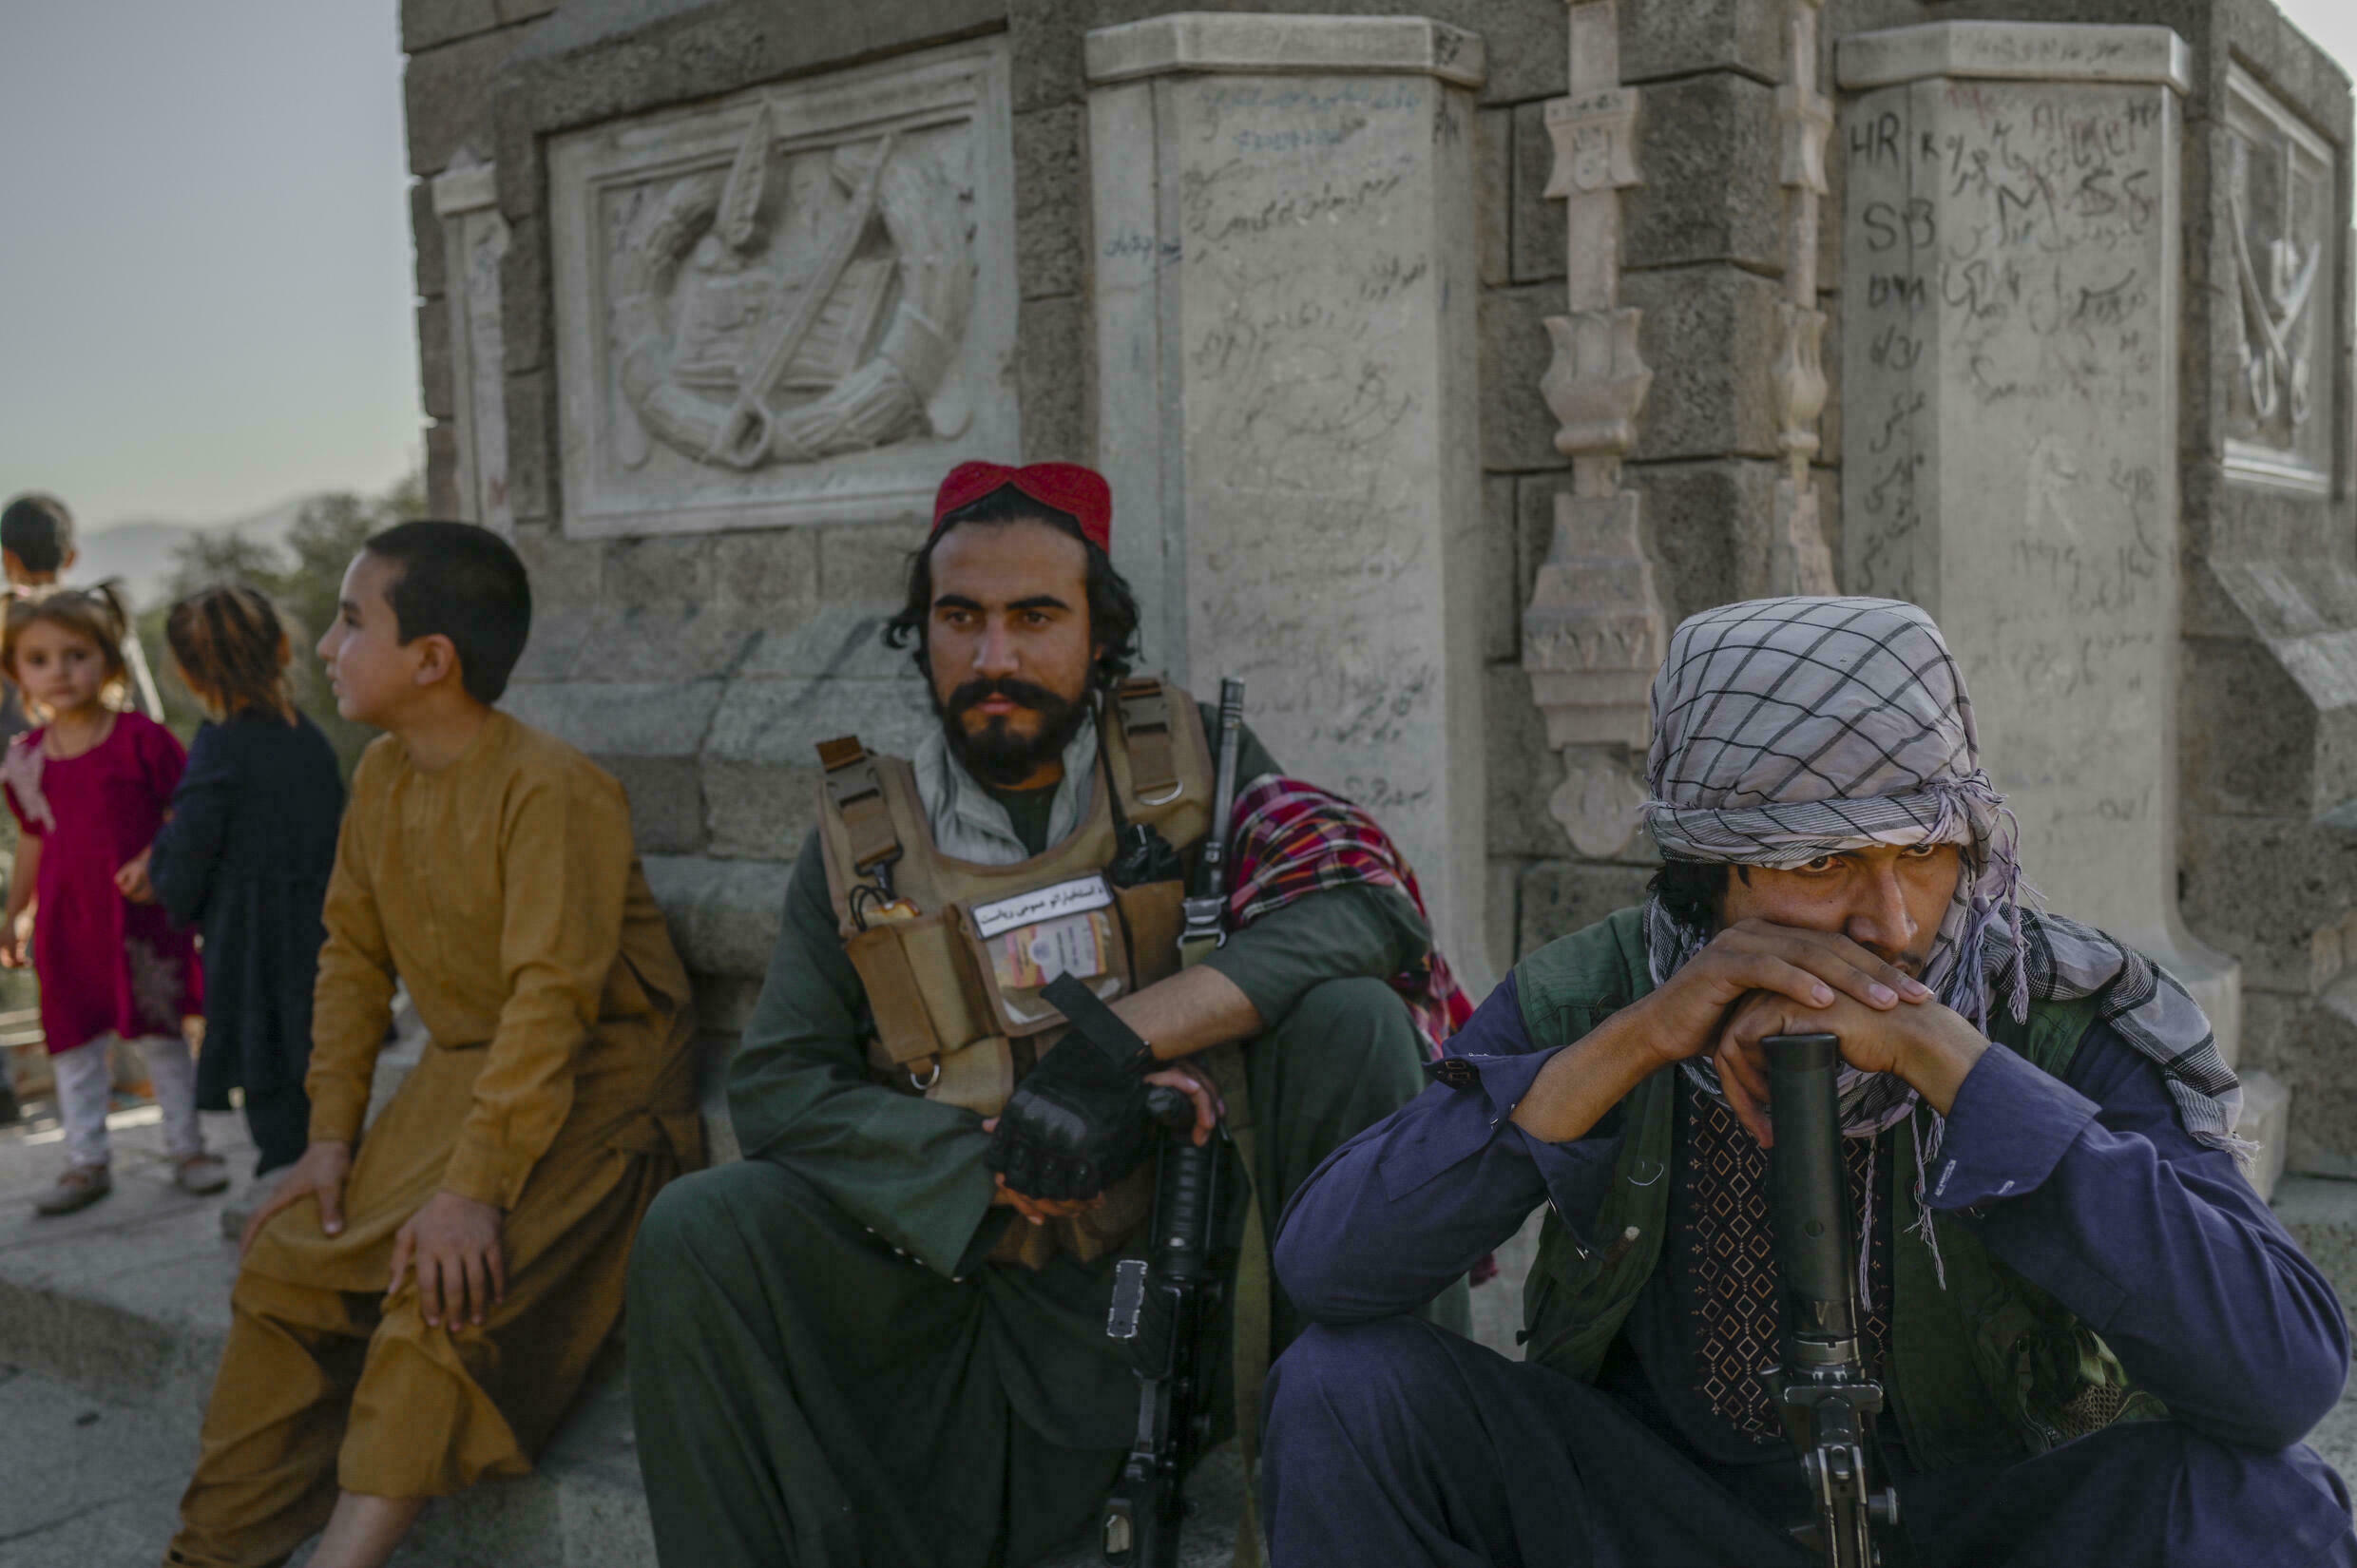 After years of fighting in the countryside, some Taliban fighters got their first visit to the Kabul Zoo